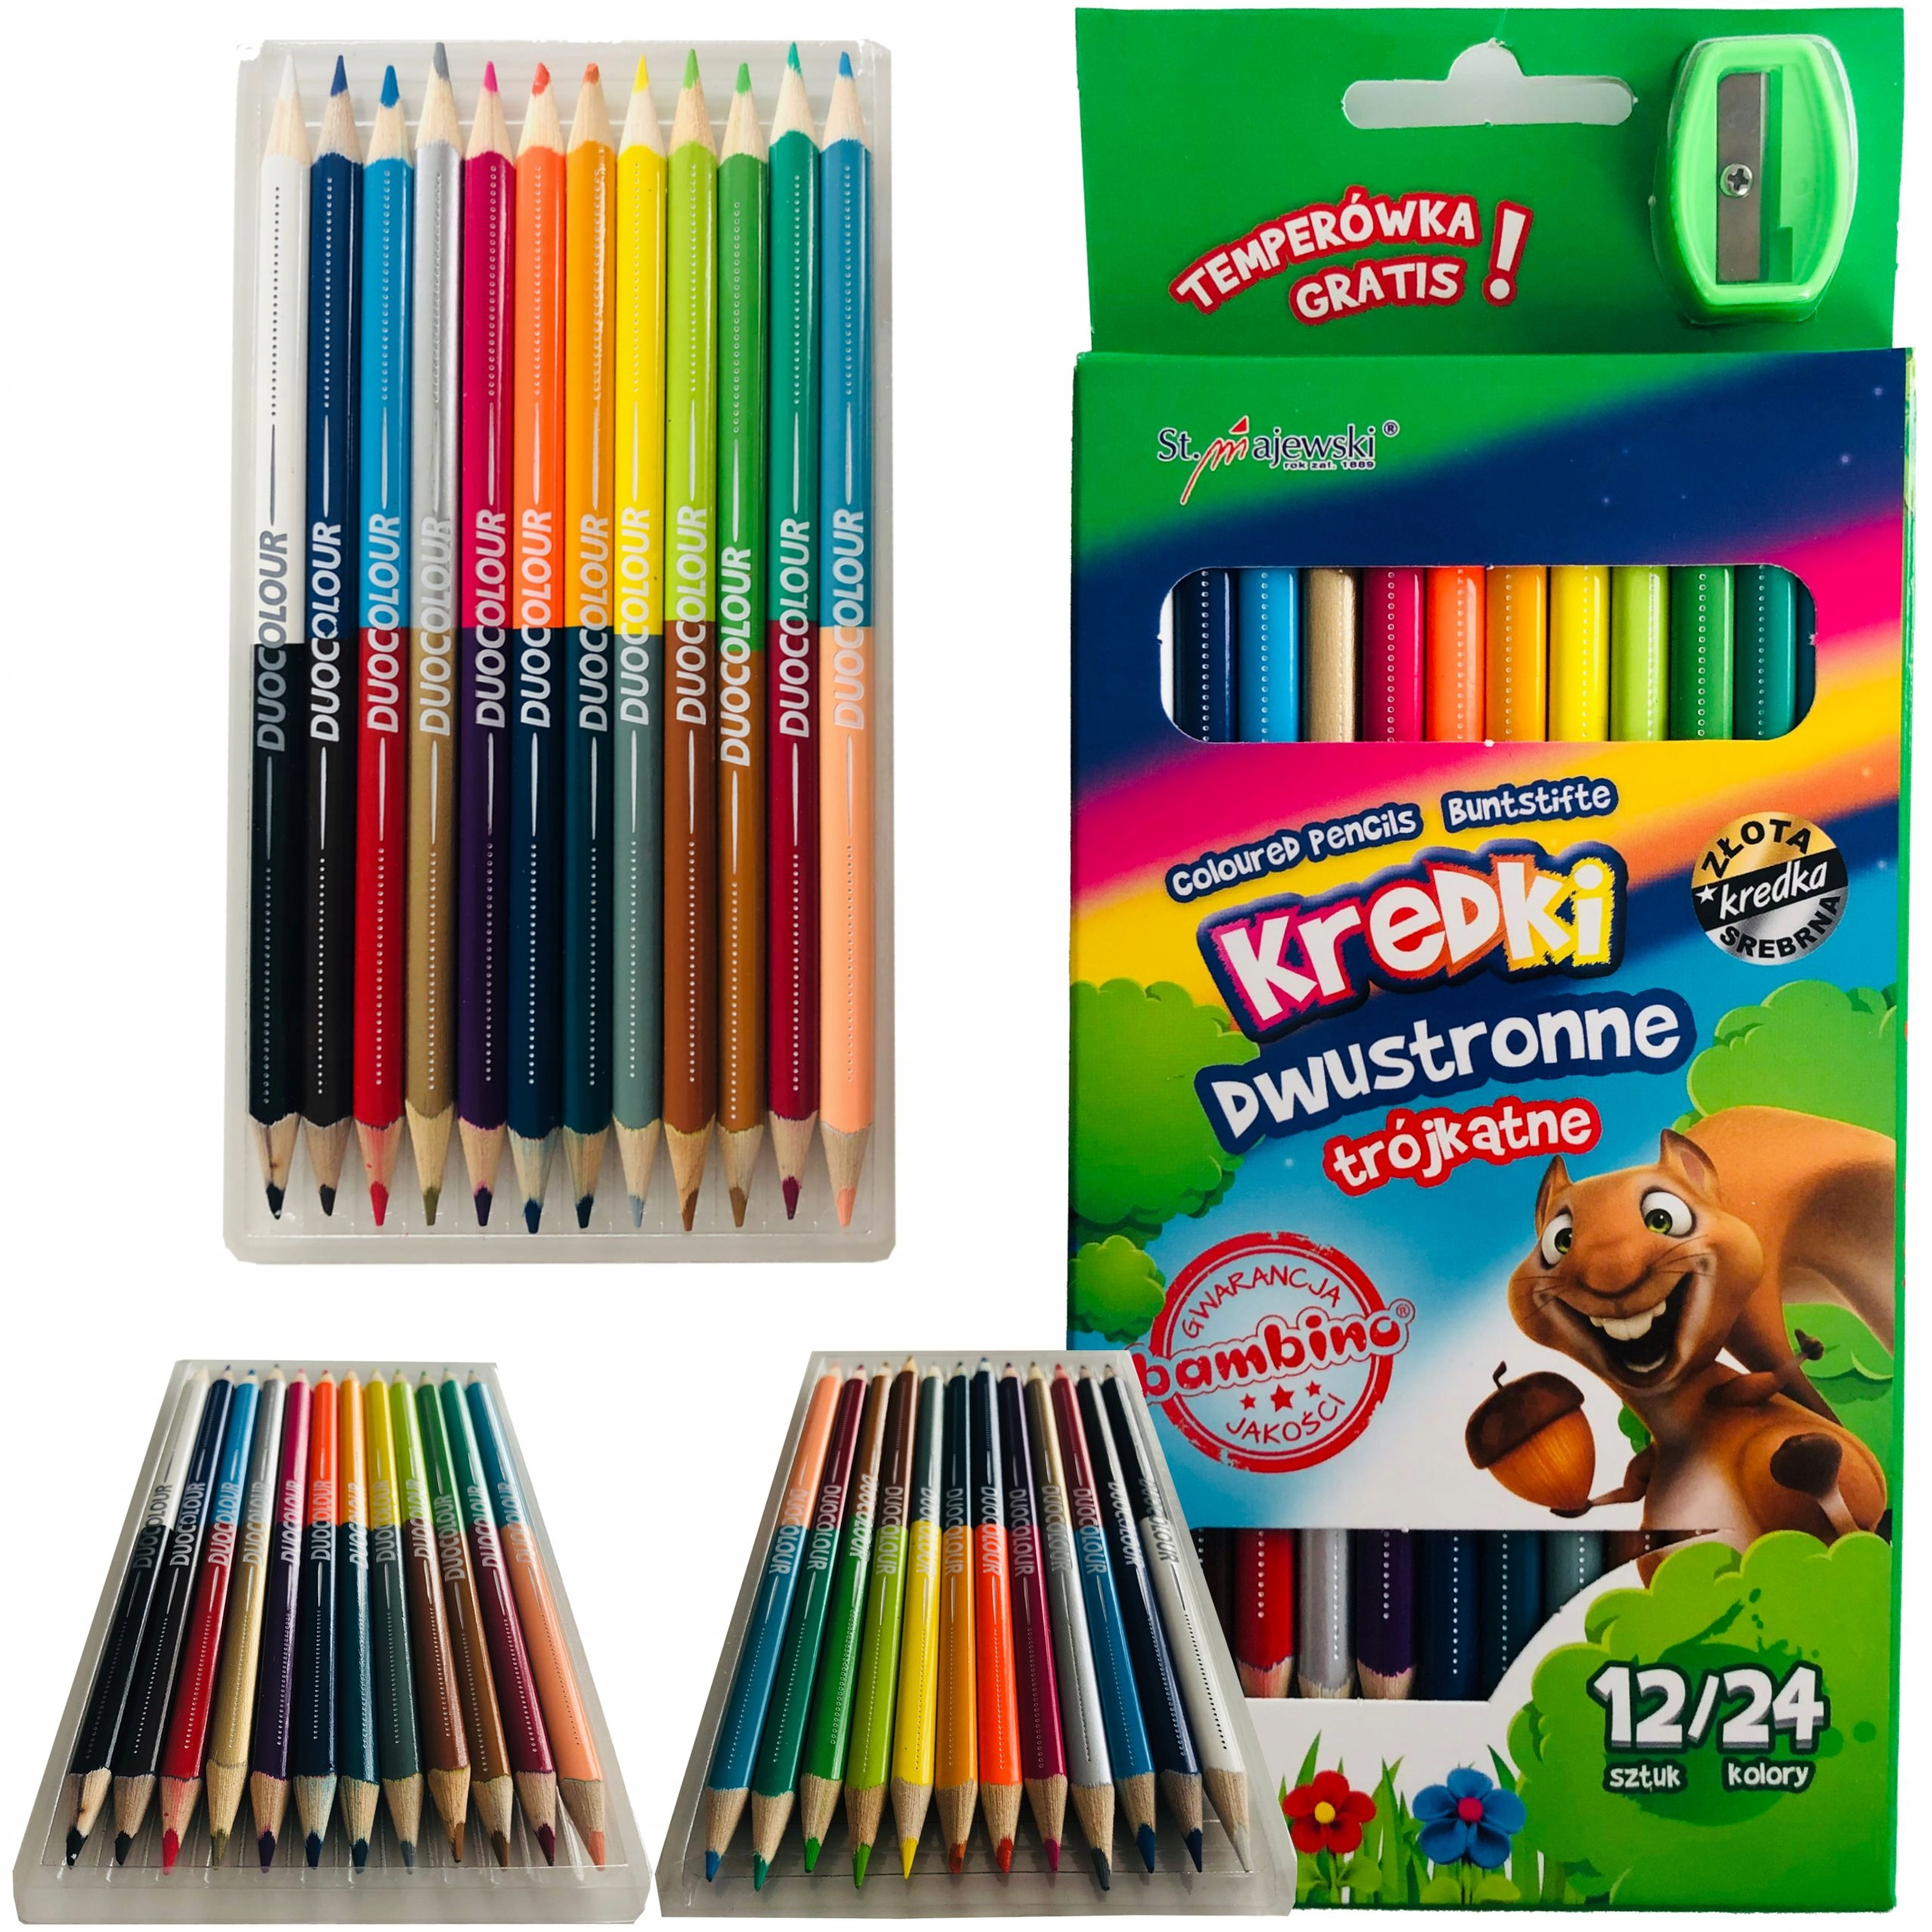 Item BAMBINO CRAYONS TRIANGULAR DOUBLE-SIDED 12/24 COLORS